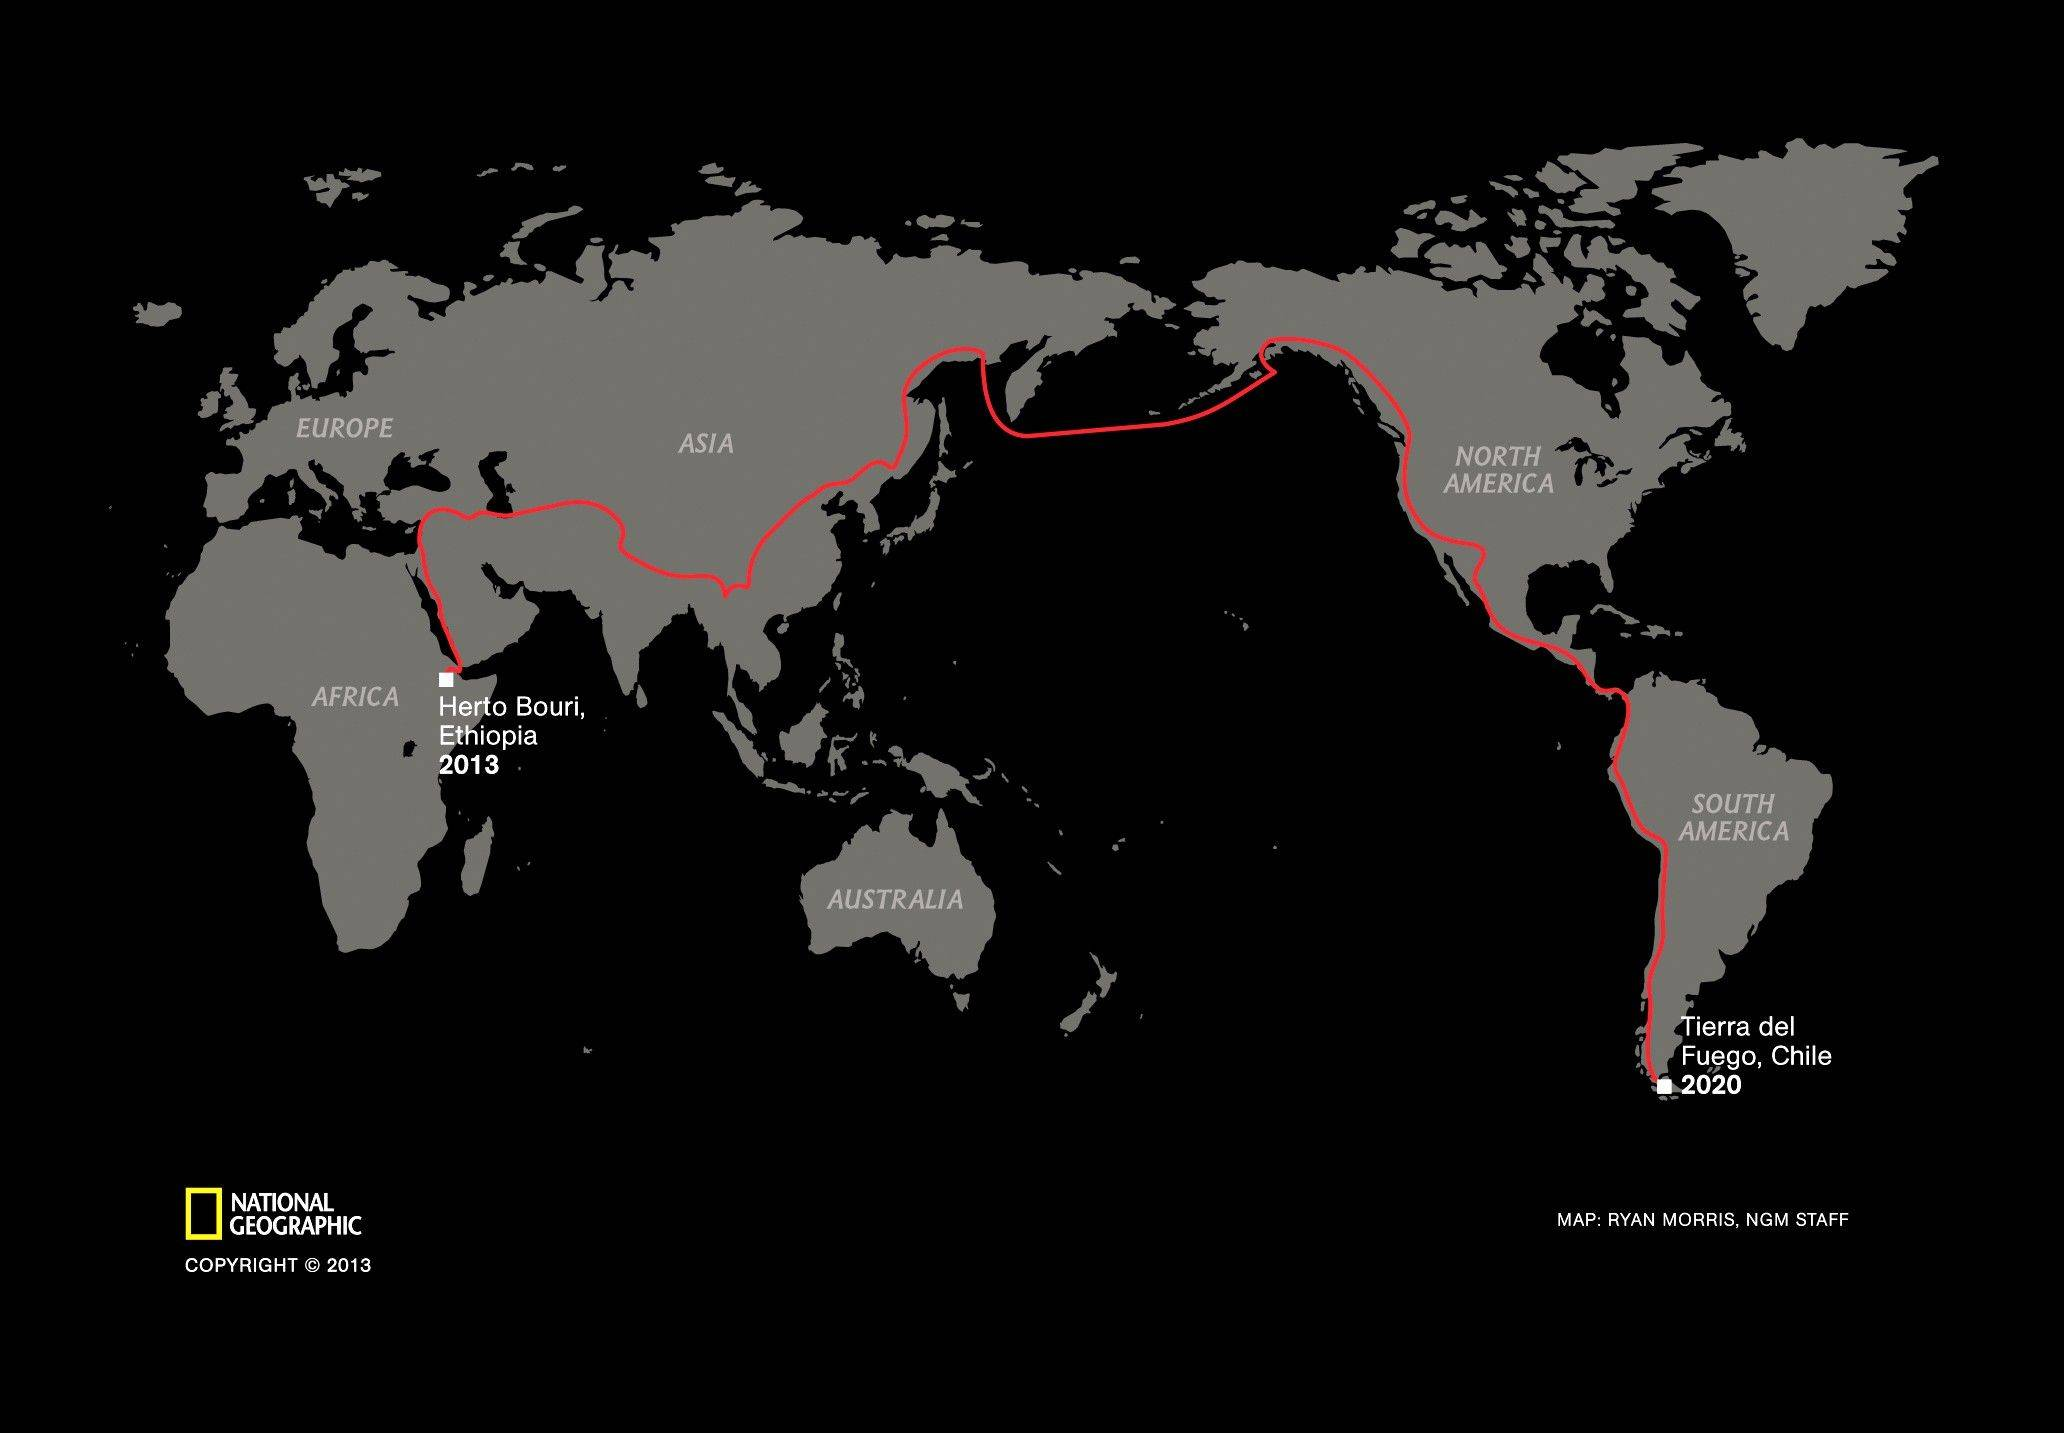 This graphic released by the National Geographic Society shows the route of the the planned seven-year global trek from Africa to Tierra del Fuego of journalist Paul Salopek.